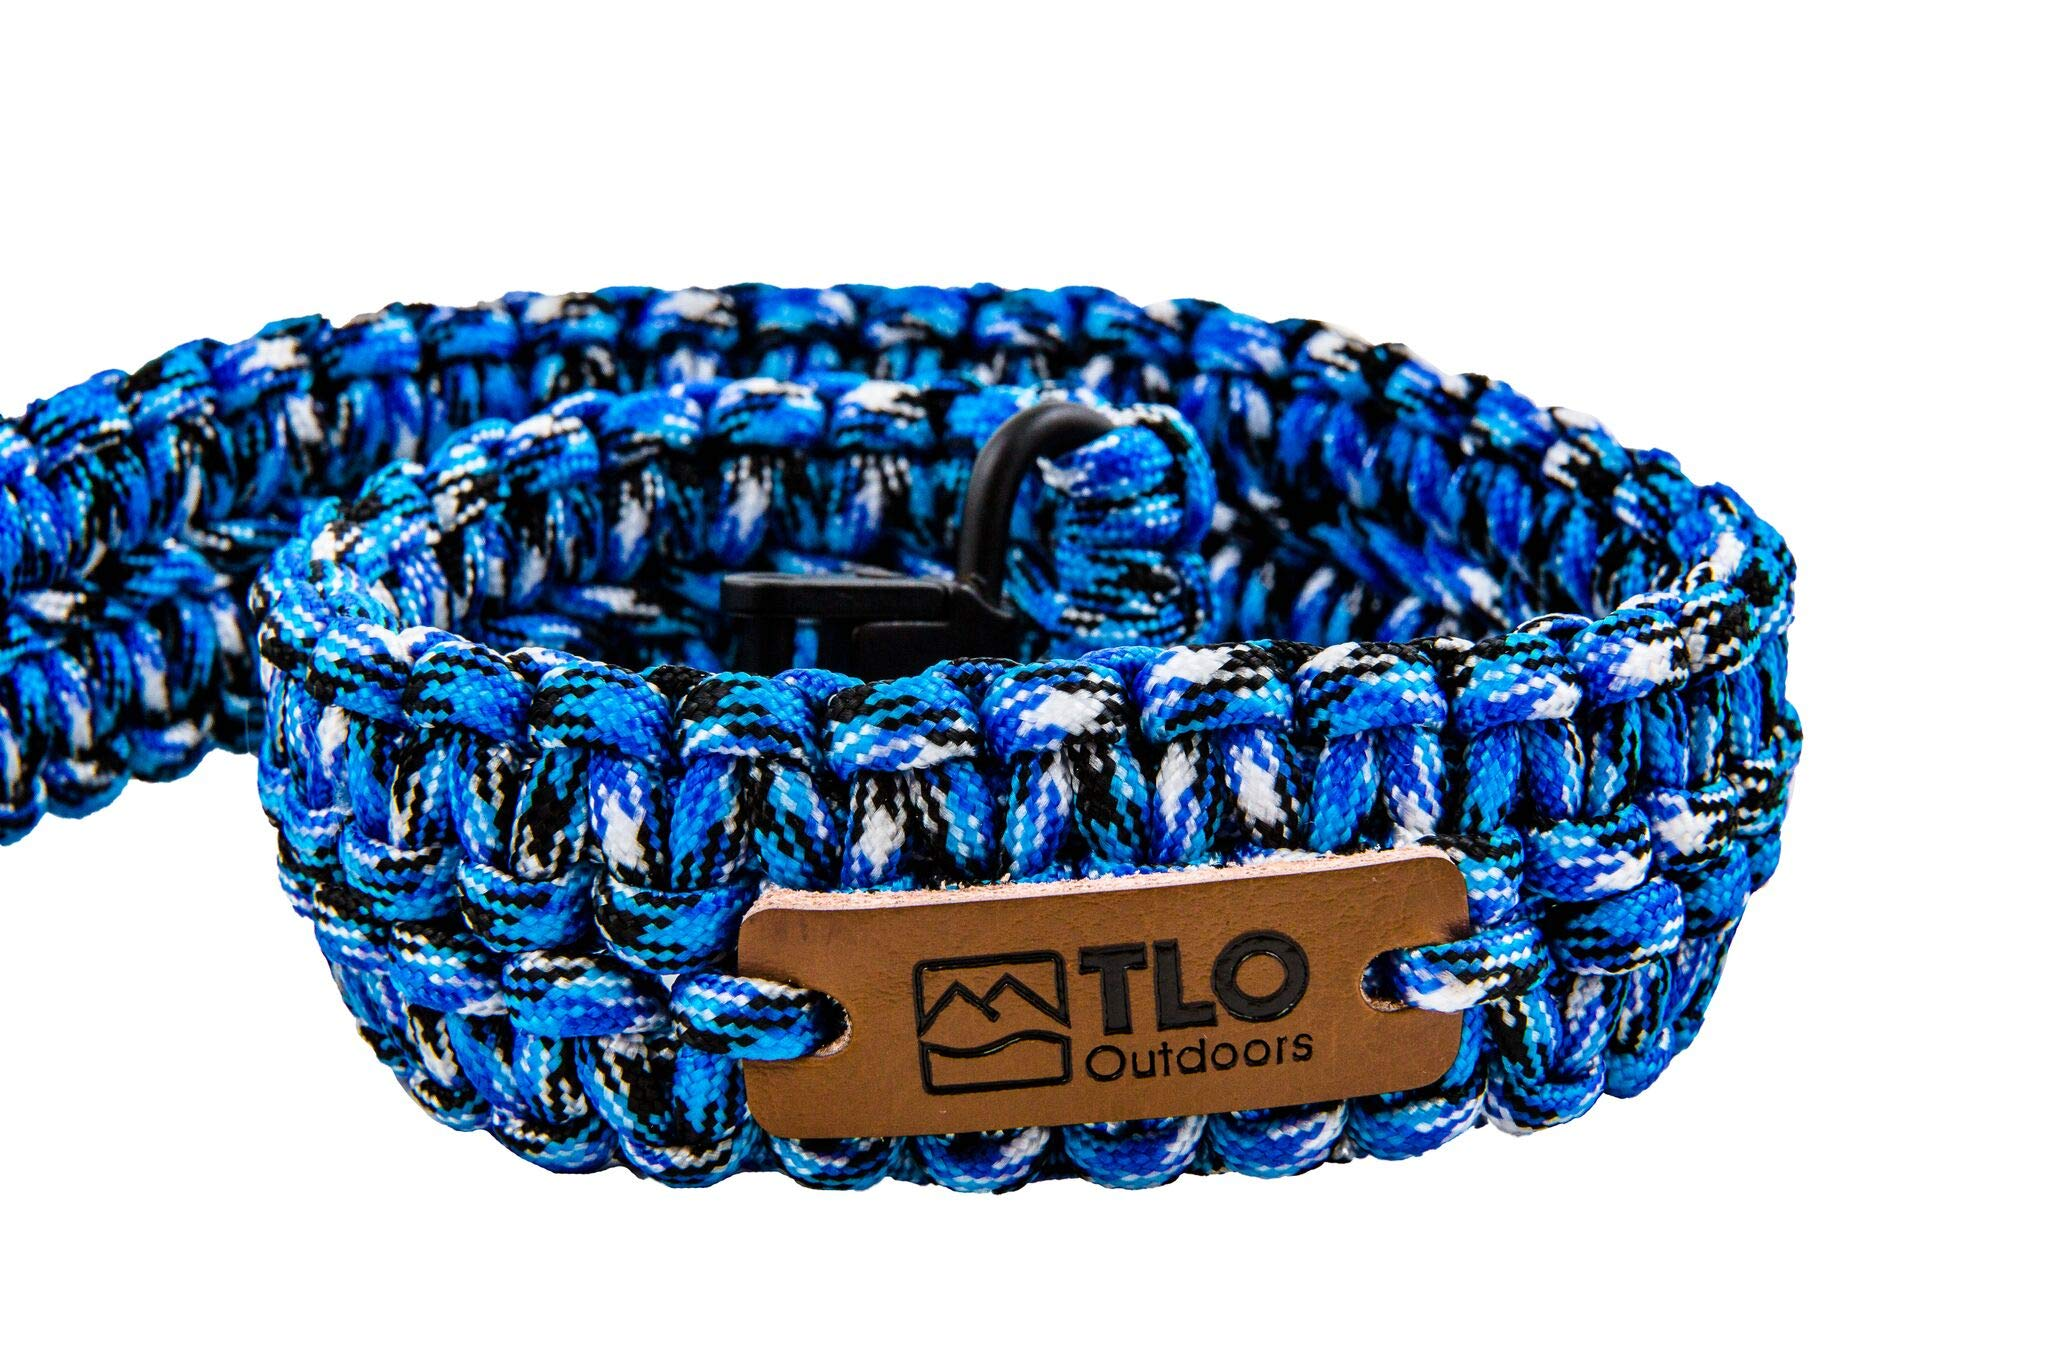 TLO Outdoors Paracord Gun Sling - Adjustable 2-Point Paracord Sling Rifle, Shotgun Crossbows (550 Rated Nylon, Kernmantle Paracord, Extra Wide, Blue/Black CAMO) by TLO Outdoors